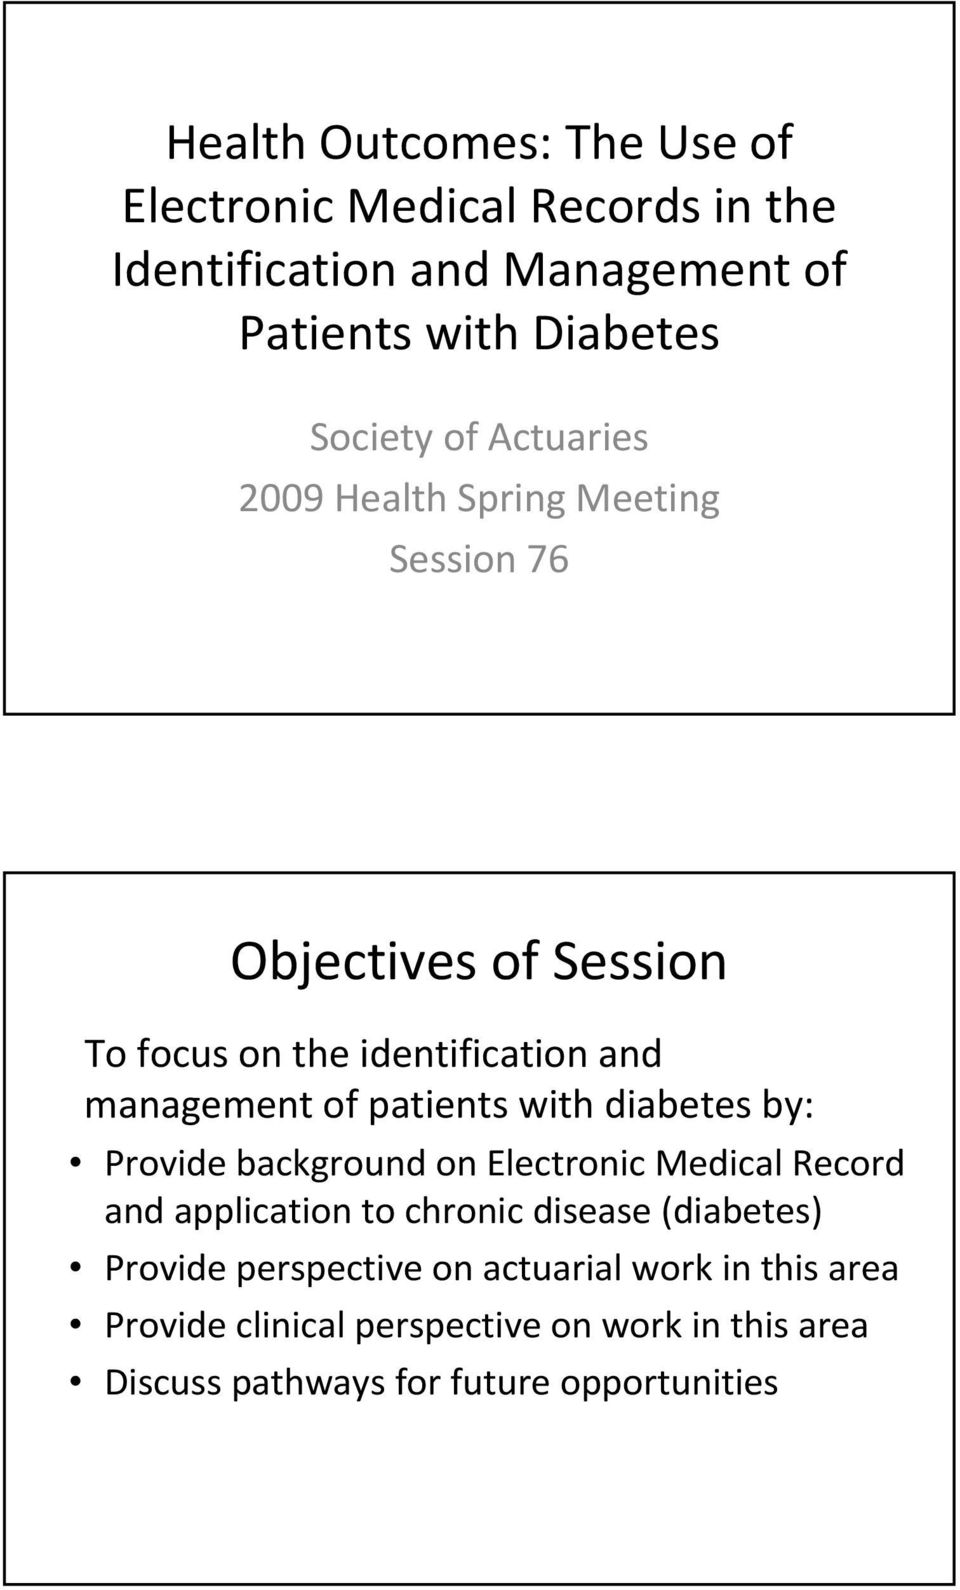 patients with diabetes by: Provide background on Electronic Medical Record and application to chronic disease (diabetes)